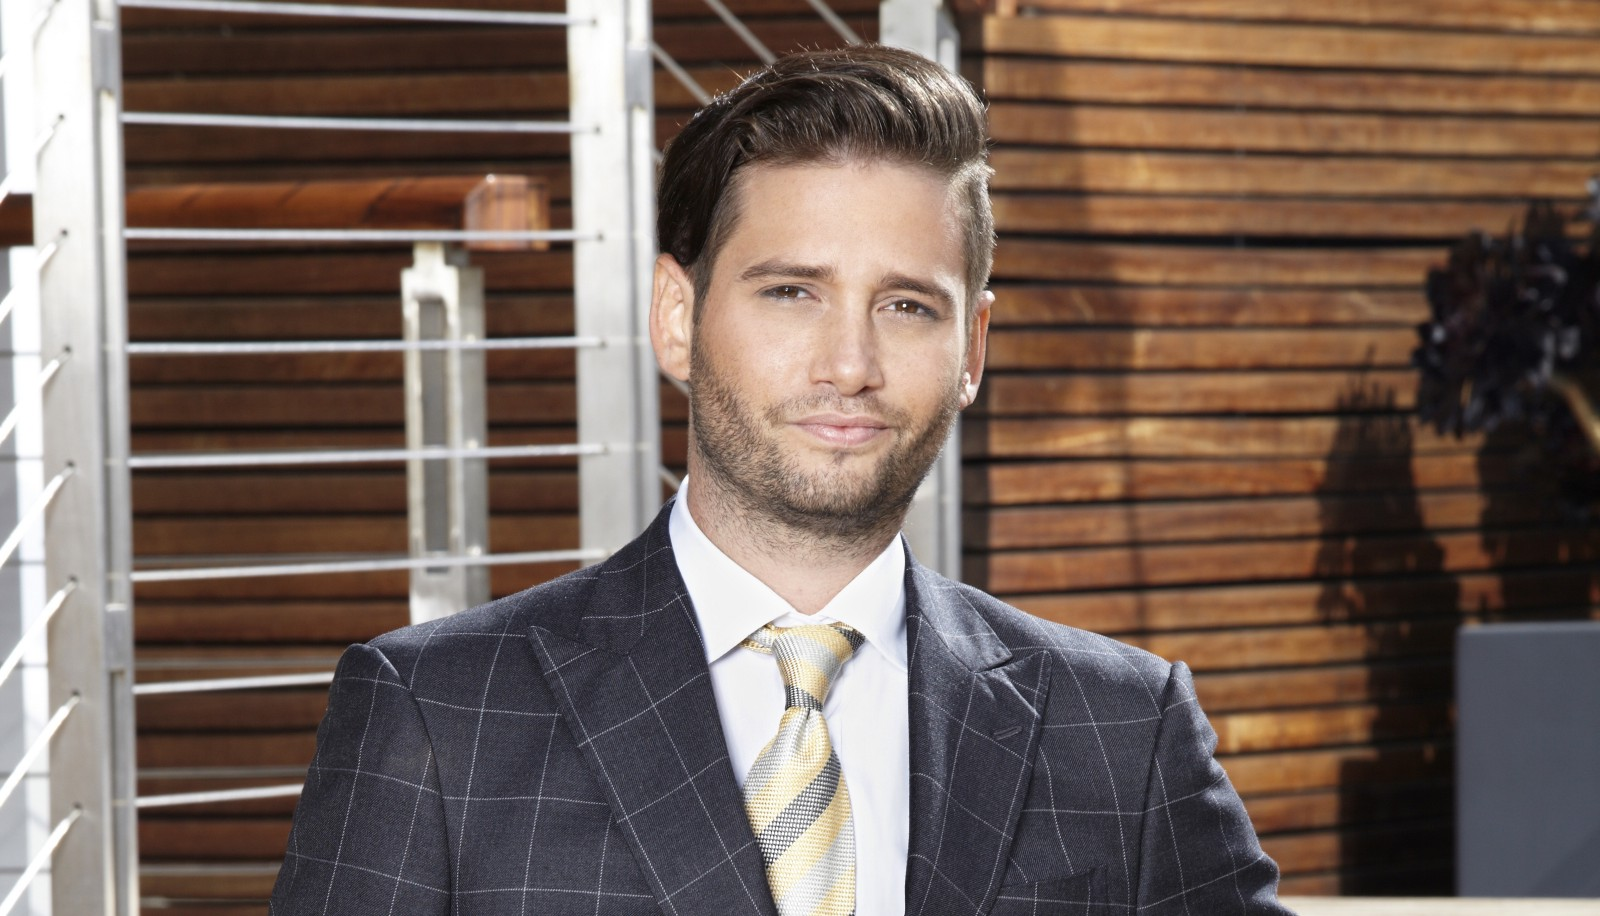 Josh Flagg, son of Michael and Cindy Flagg, was born on August 20th, 1985  in Los Angeles, California. He is a grandson of Edith Flagg famously known  for her ...